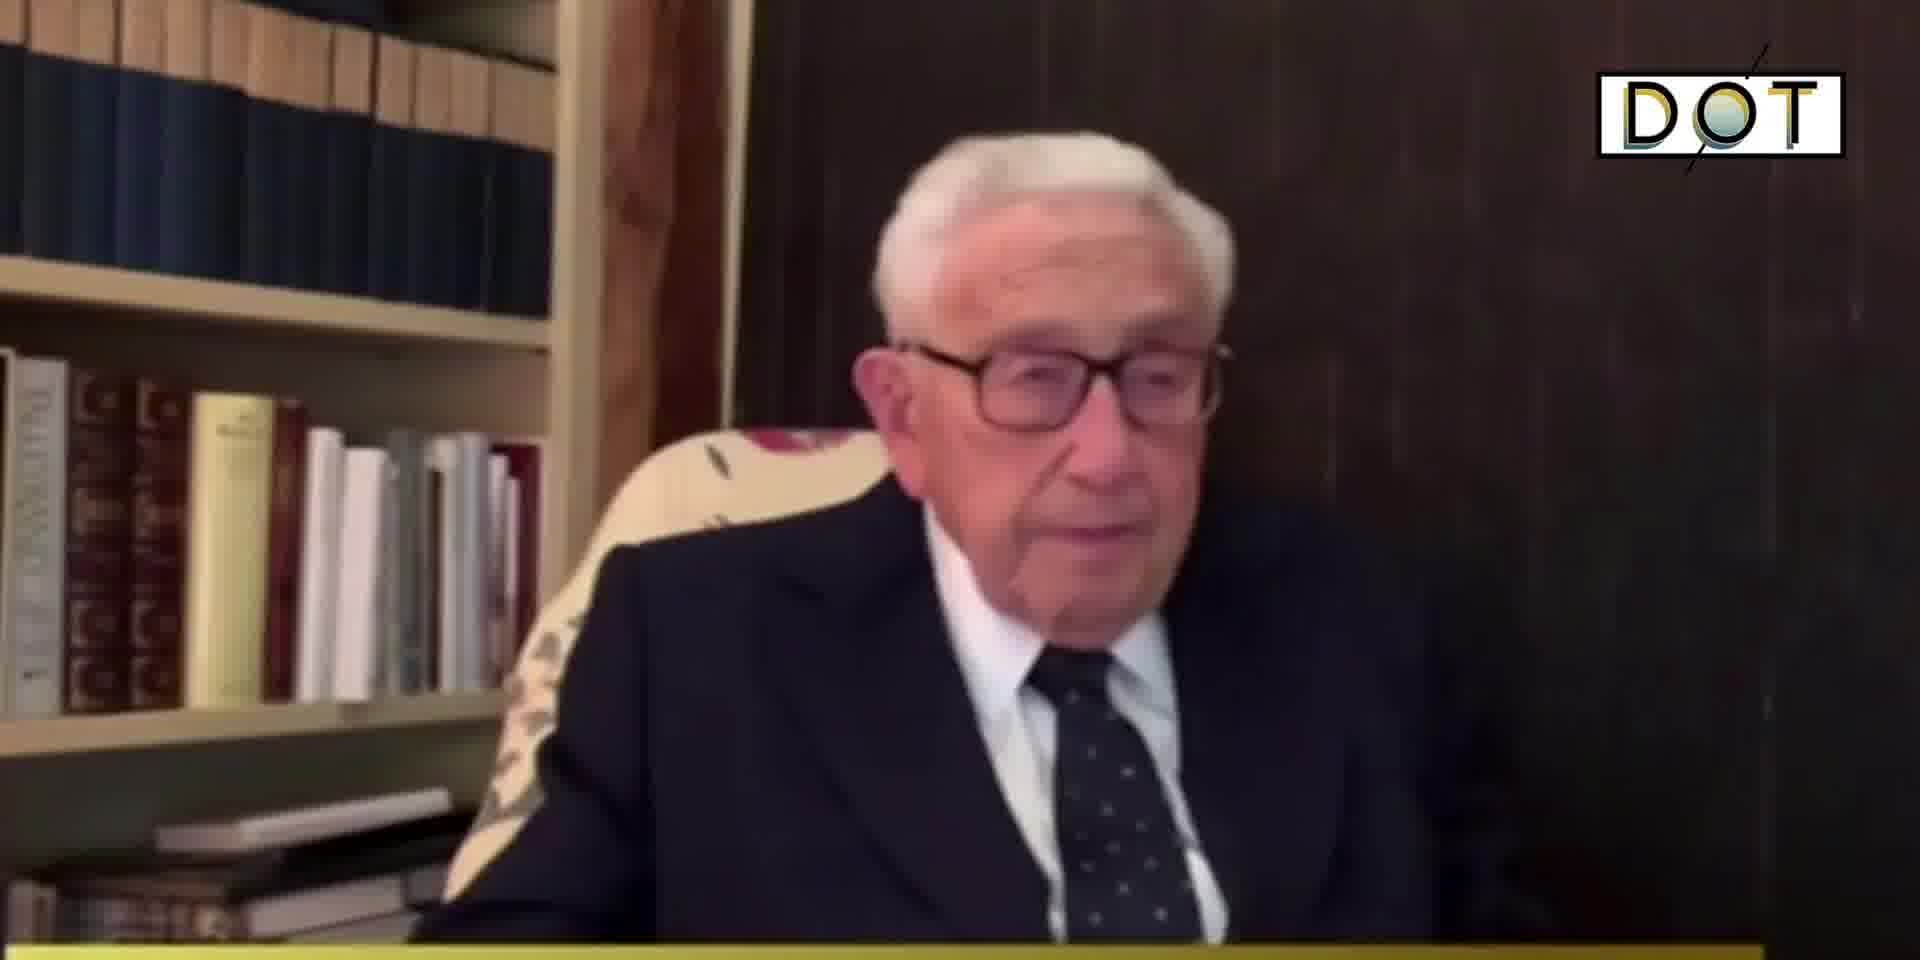 Watch This | China, U.S. ties require 'even more intensive efforts': Kissinger